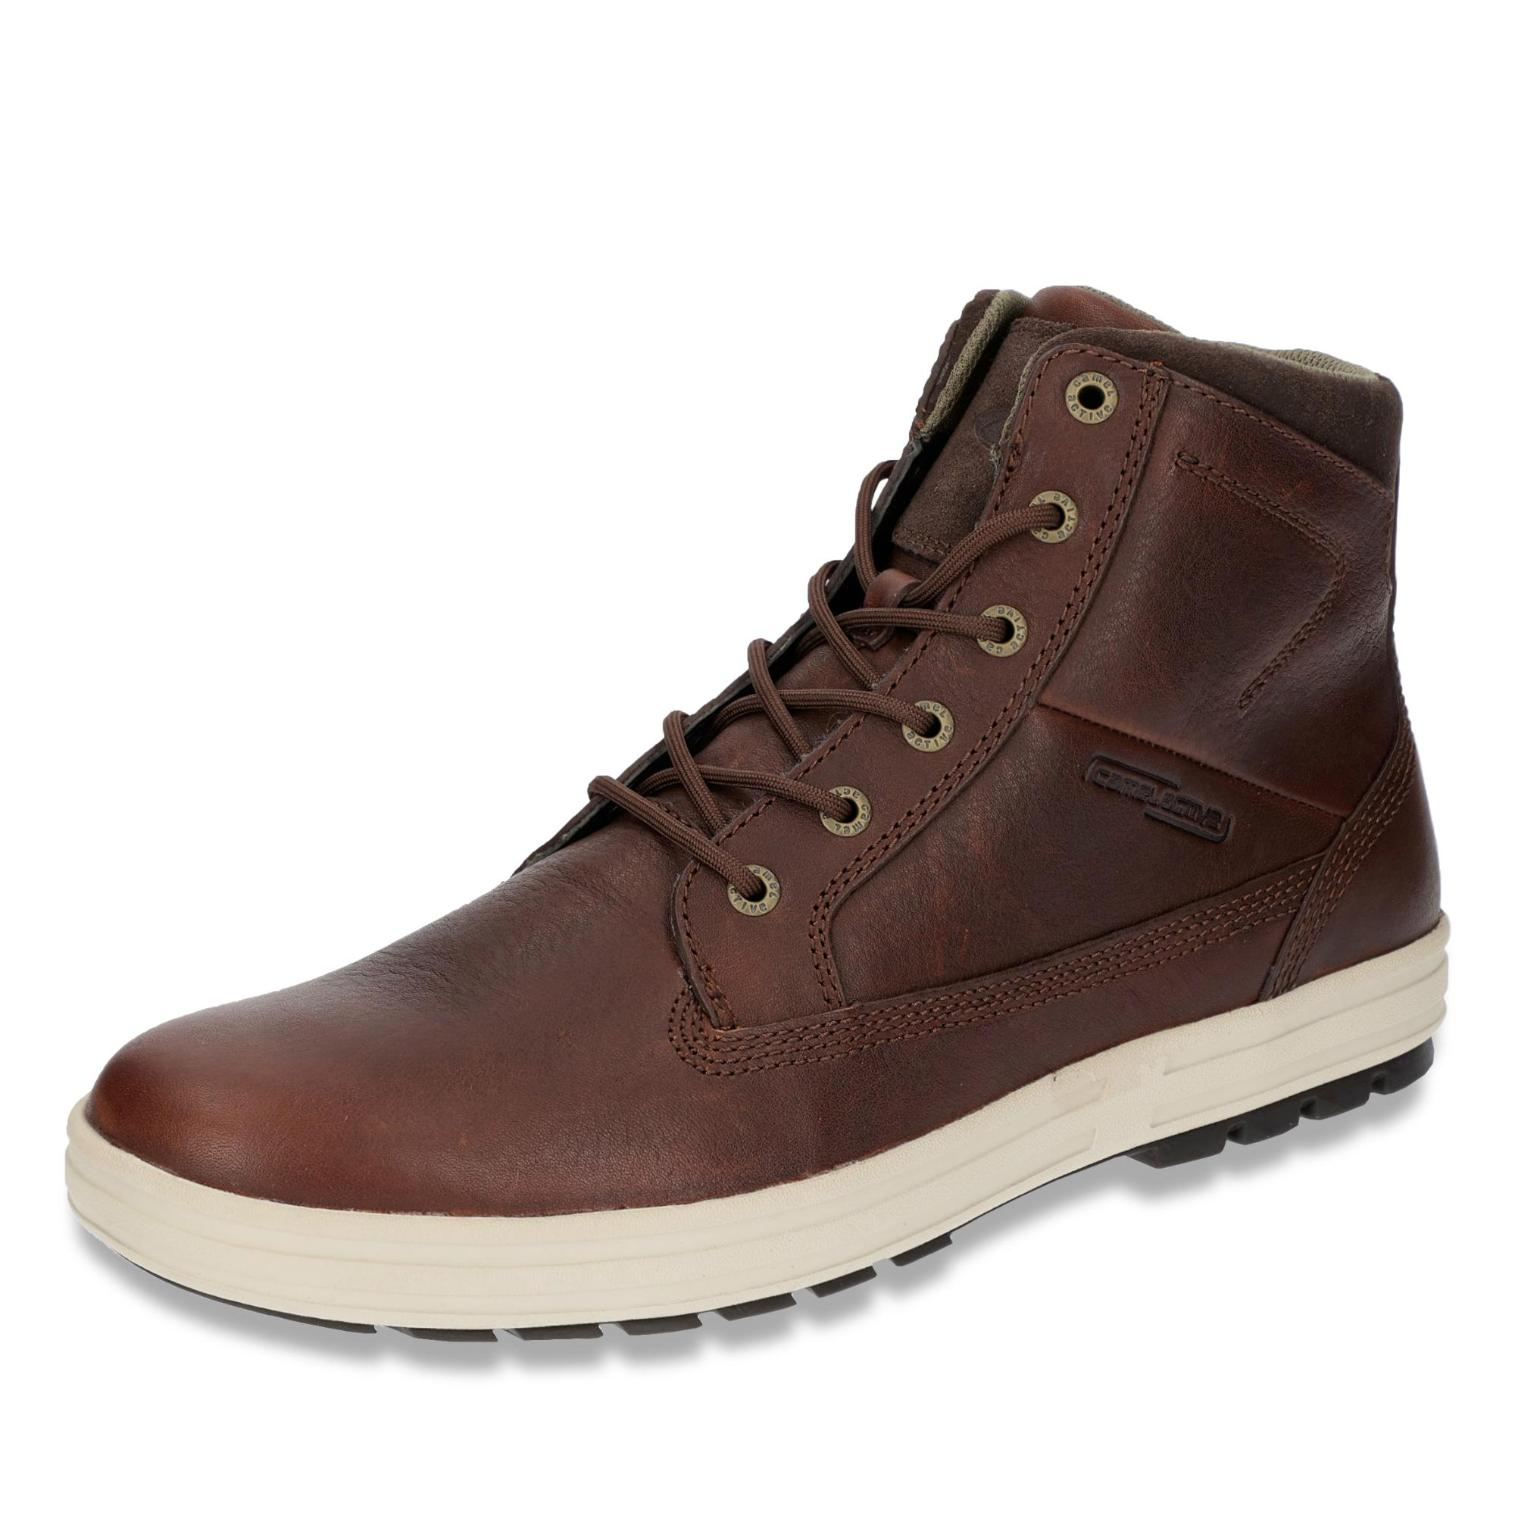 camel active Boots in Farbe dunkelbraun